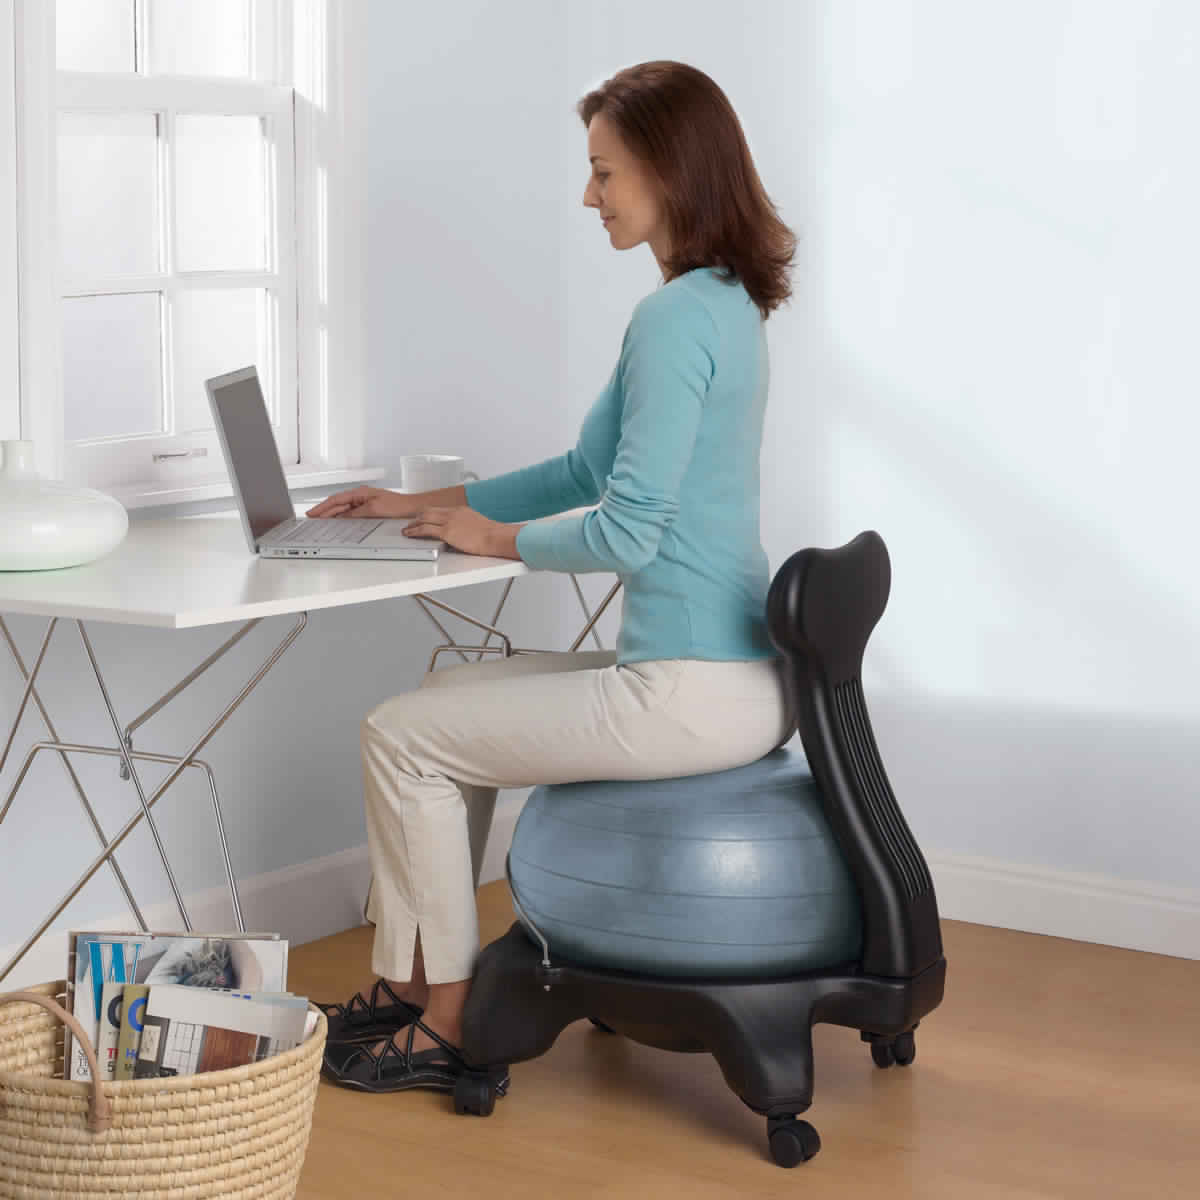 Pleasant Benefits Of Using Yoga Ball Chair For Your Home Or Office Ocoug Best Dining Table And Chair Ideas Images Ocougorg